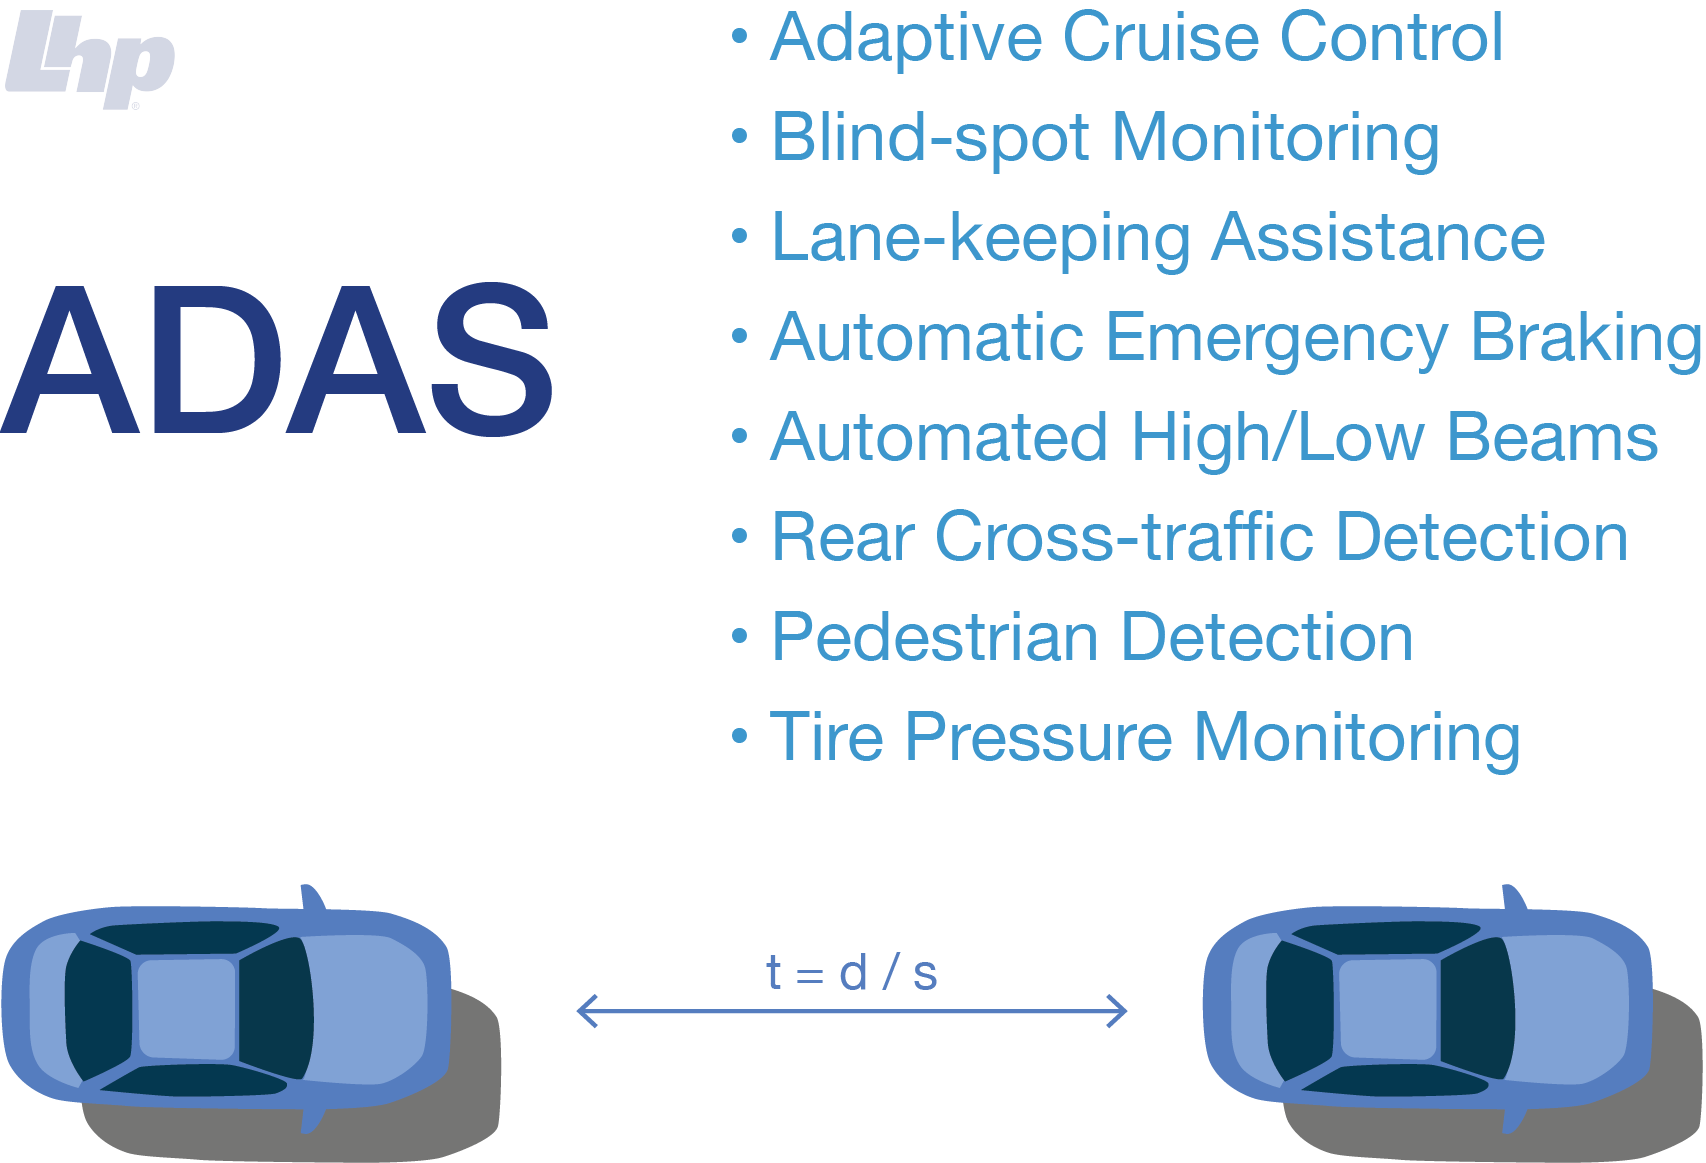 How to Ensure Safety in ADAS Design and Verification